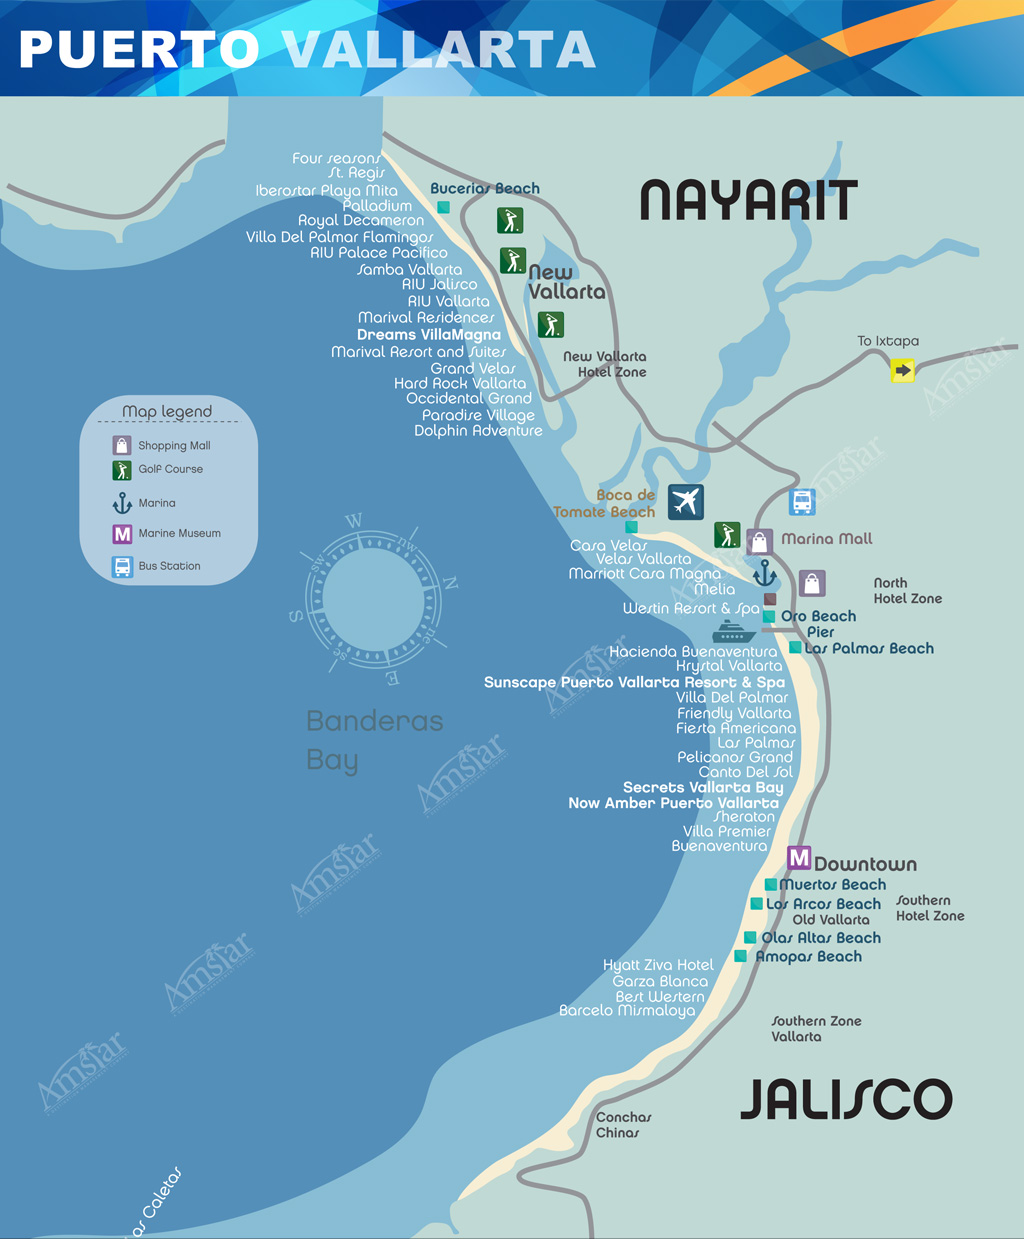 Puerto Vallarta Hotel Map : puerto, vallarta, hotel, Puerto, Vallarta, Hotels, Maping, Resources